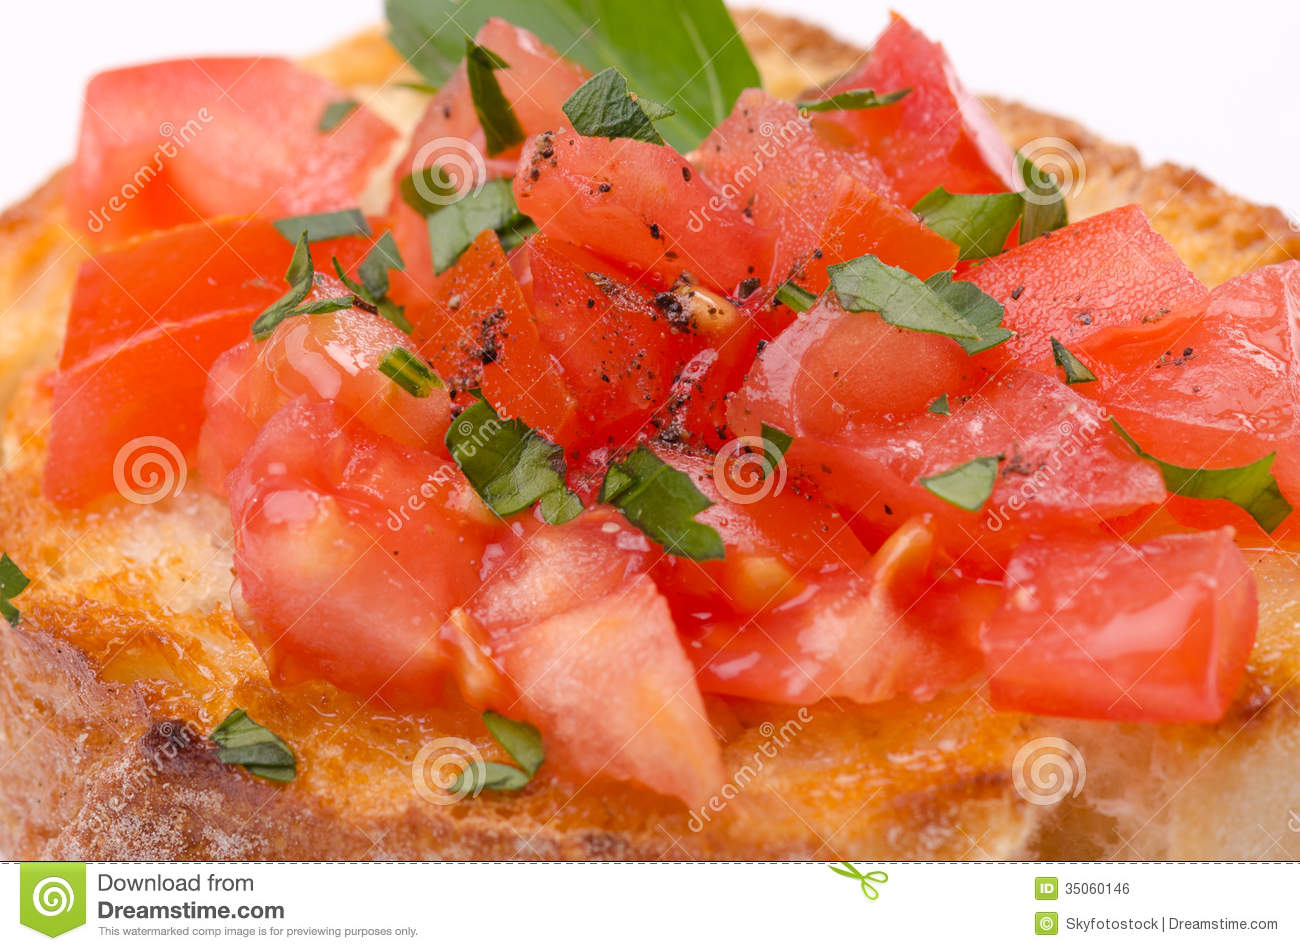 Tomato Bruschetta with olive oil, garlic and fresh basil leaves close ...